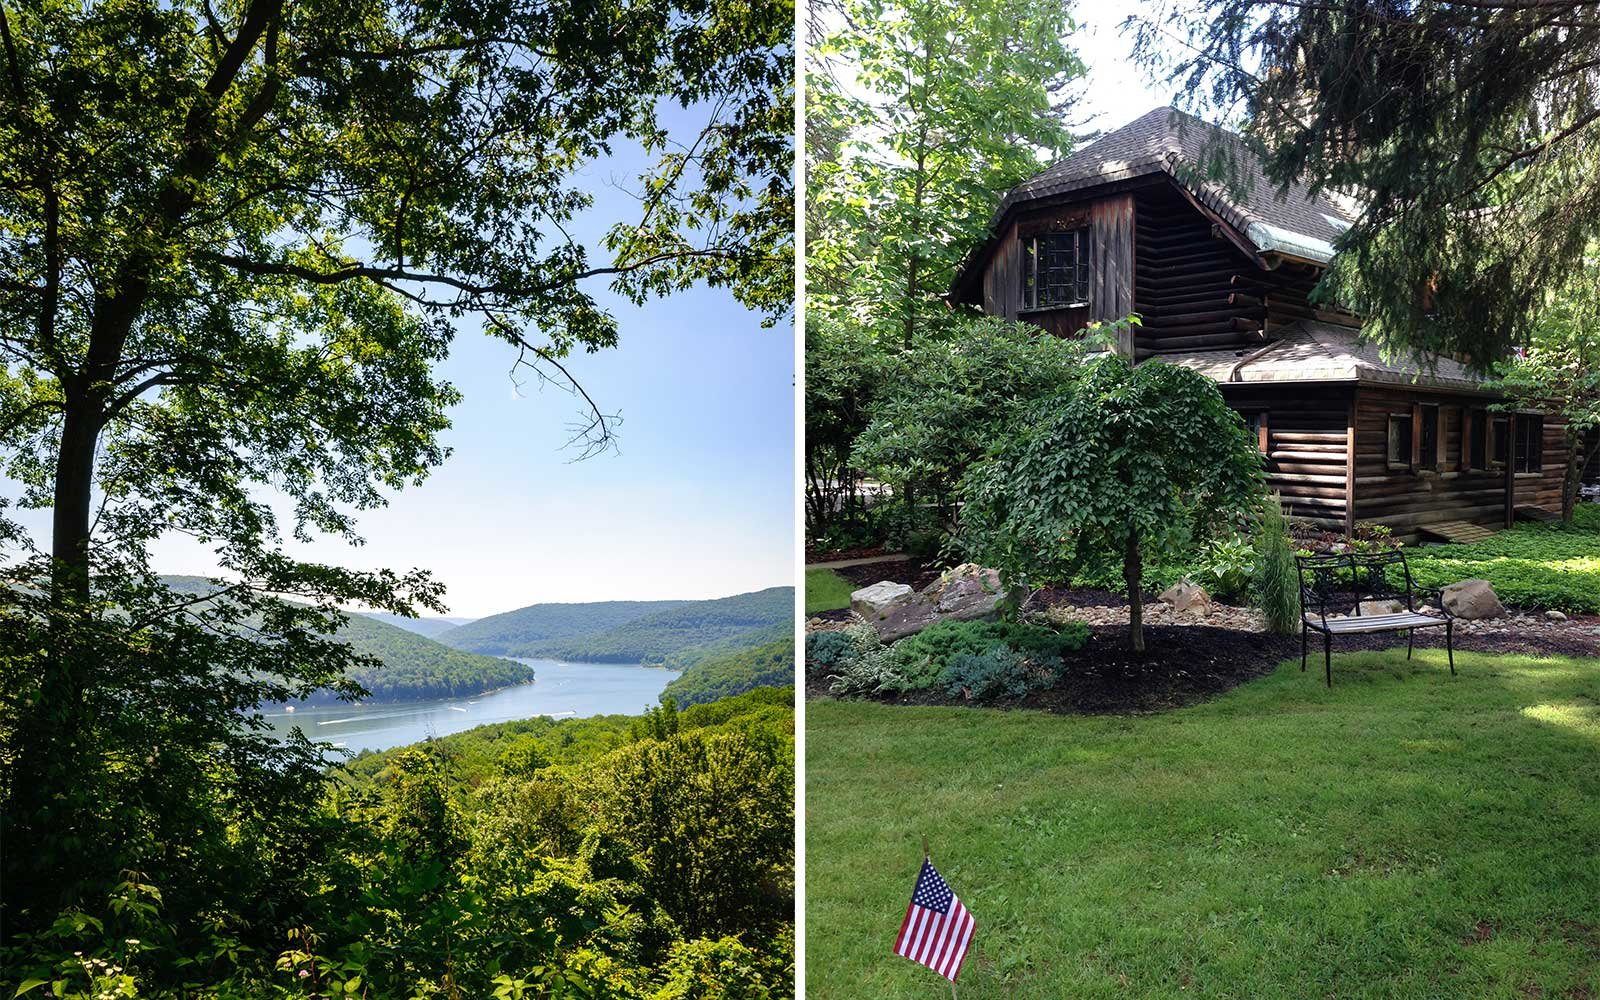 Allegheny National Forest in Pennsylvania is home to the Lodge at Glendorn